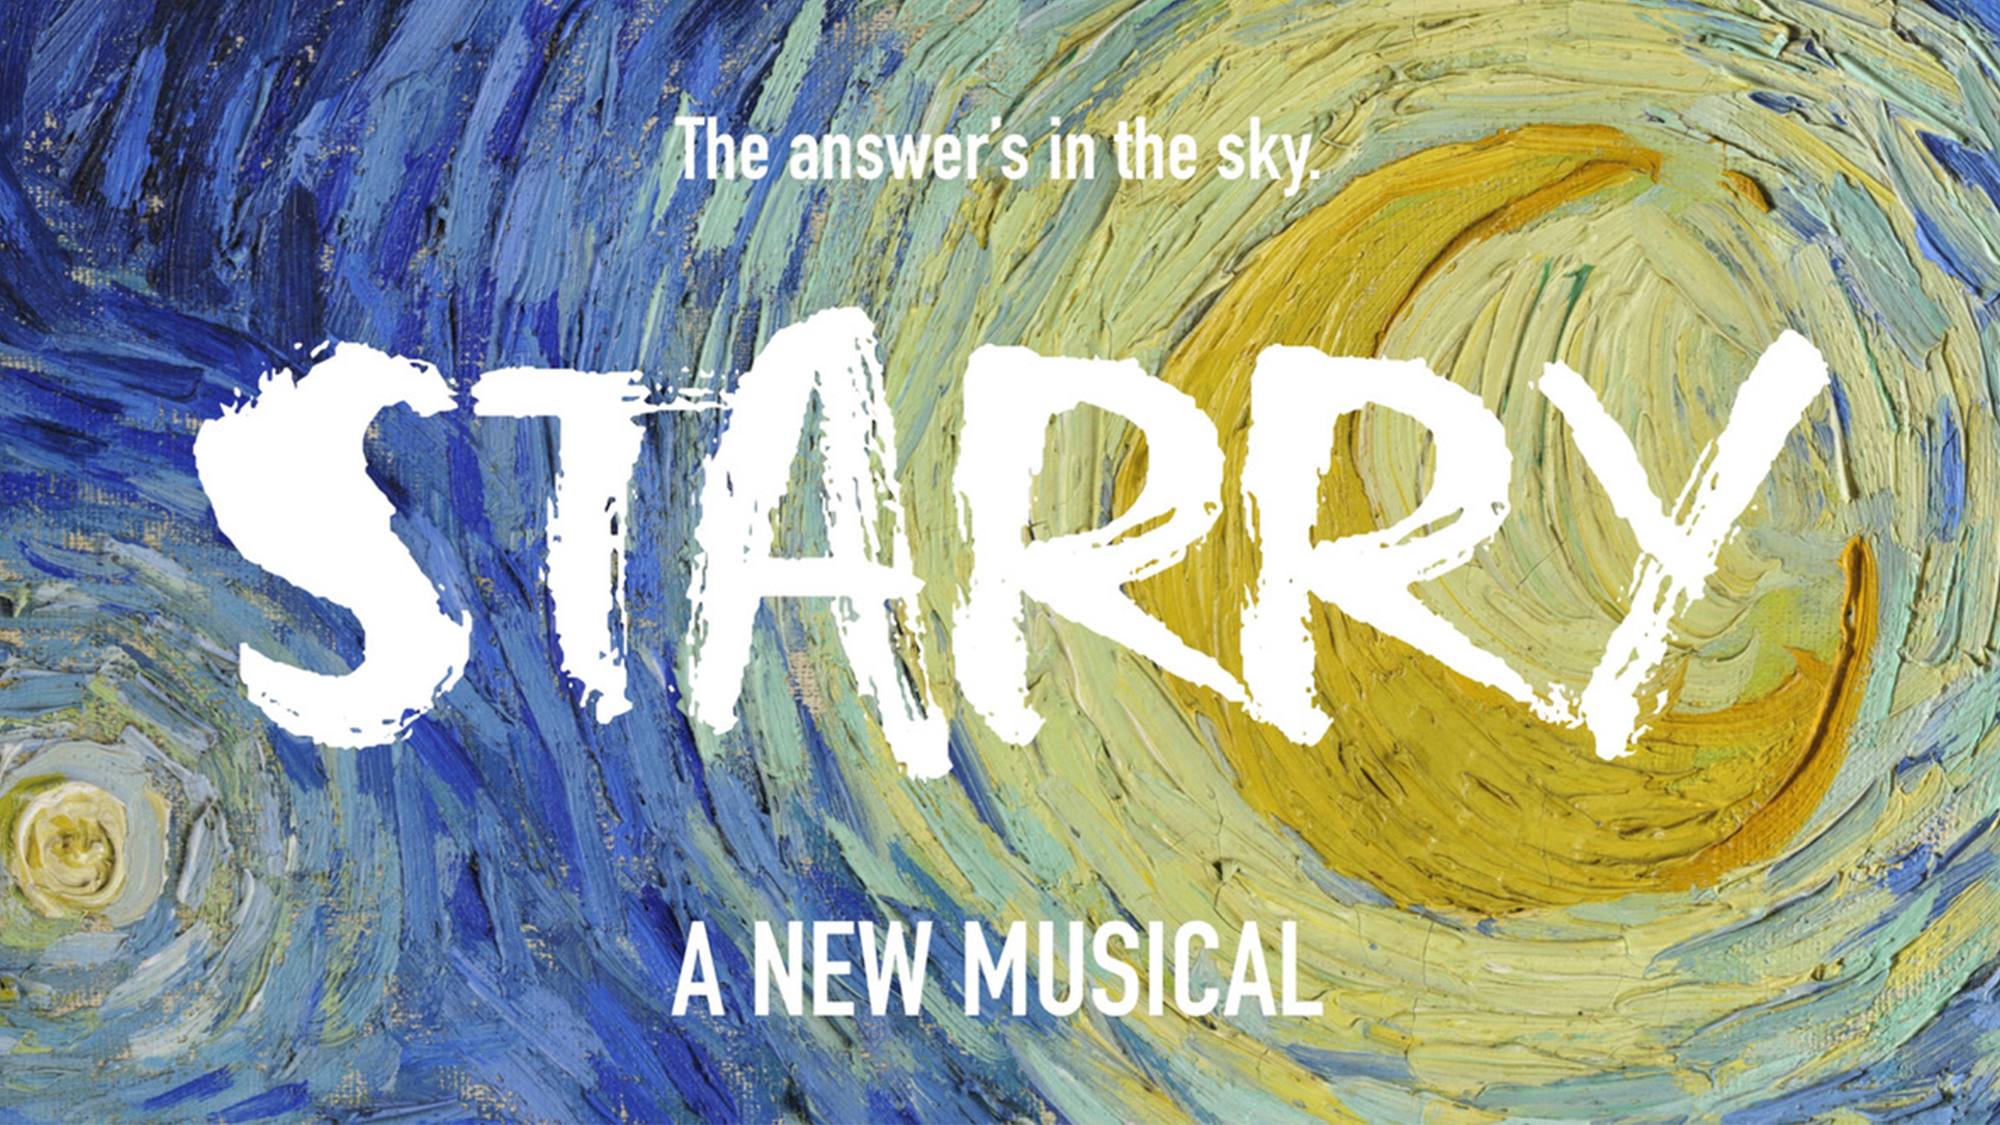 Starry: A New Musical